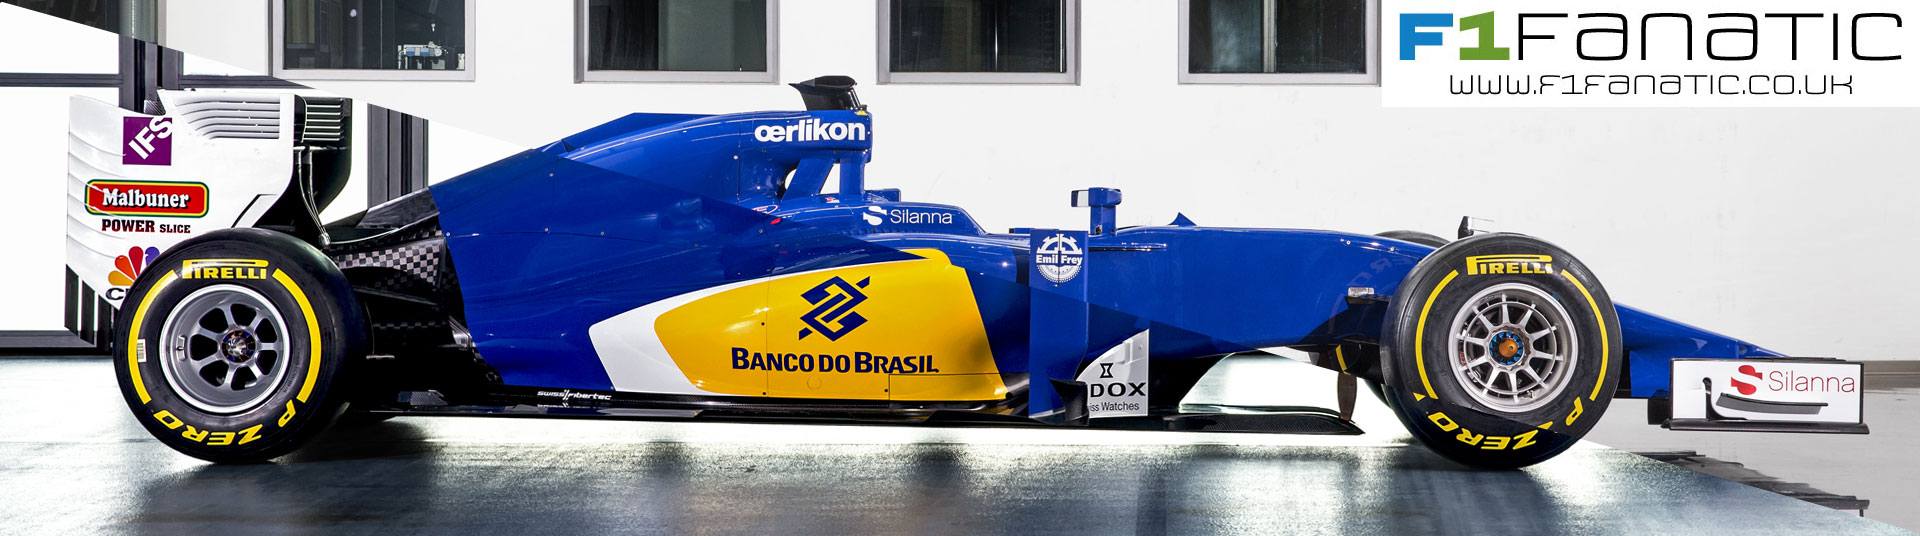 Sauber 2016 and 2015 car comparison